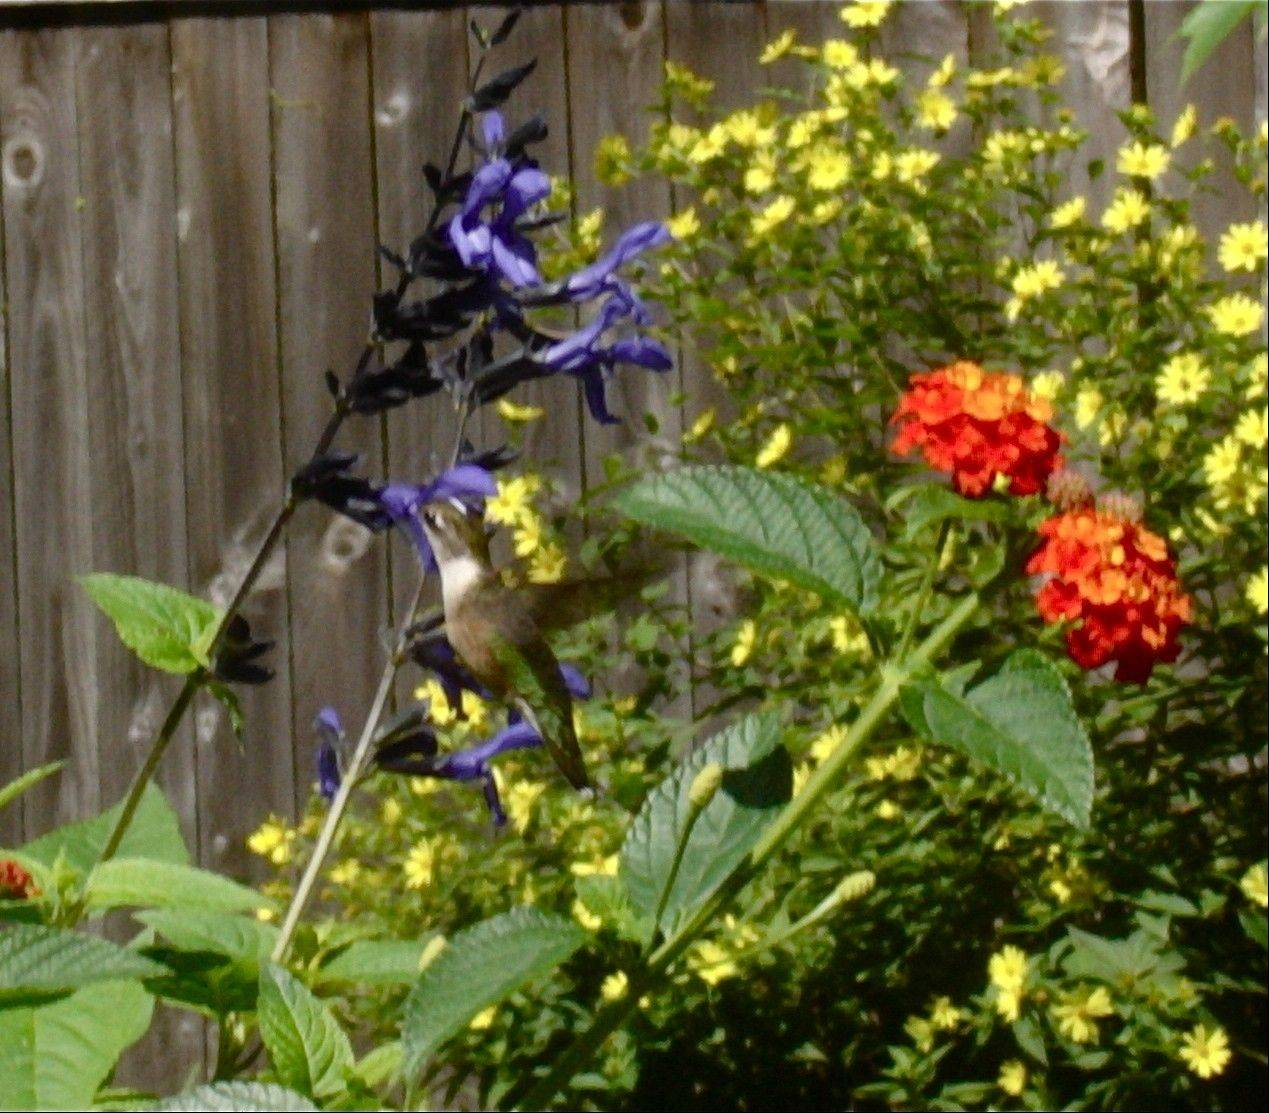 Art in the garden: Gardening for hummingbirds